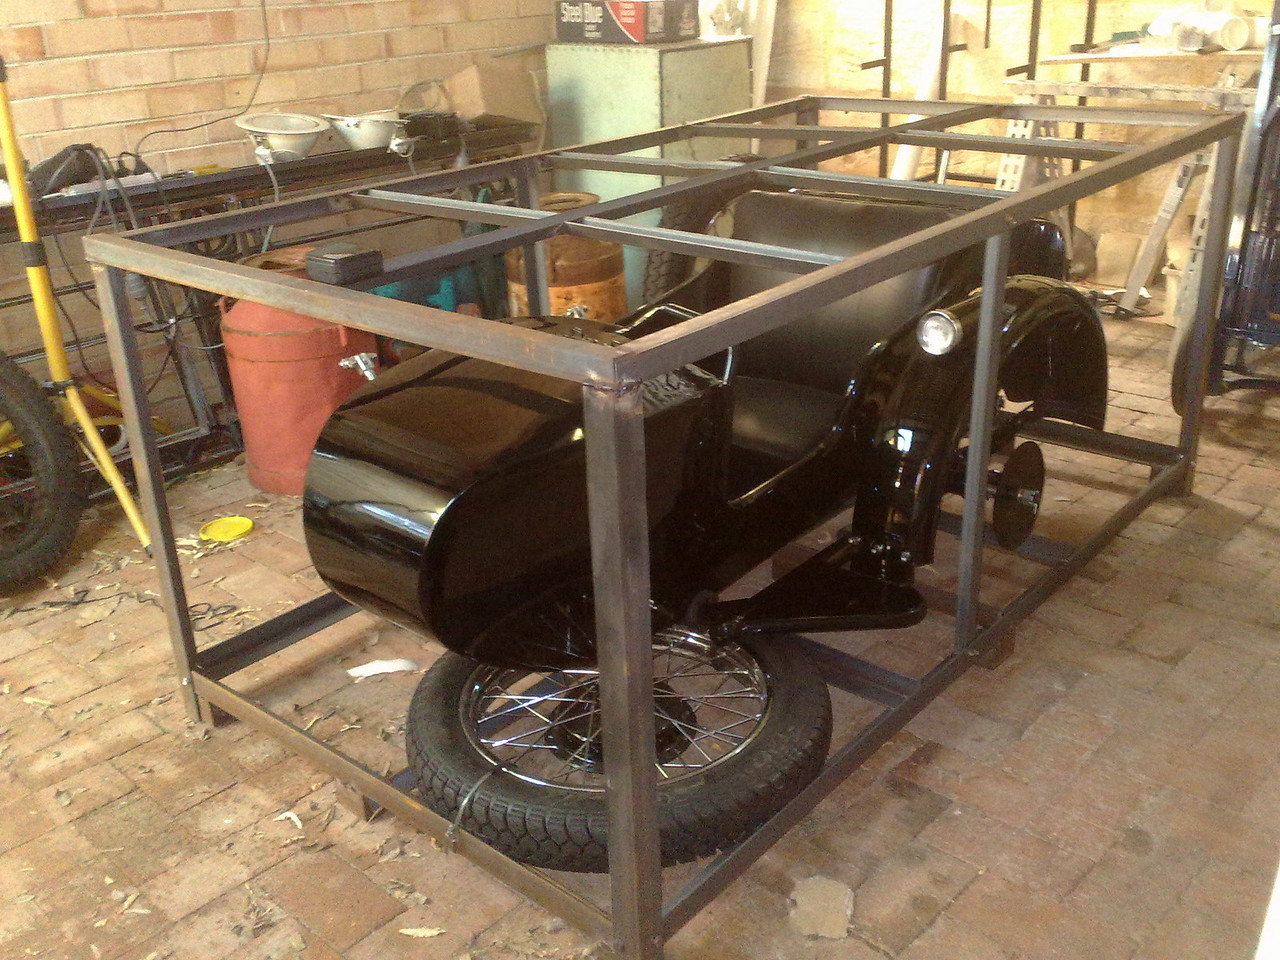 A useful frame to hold the sidecar for transport.